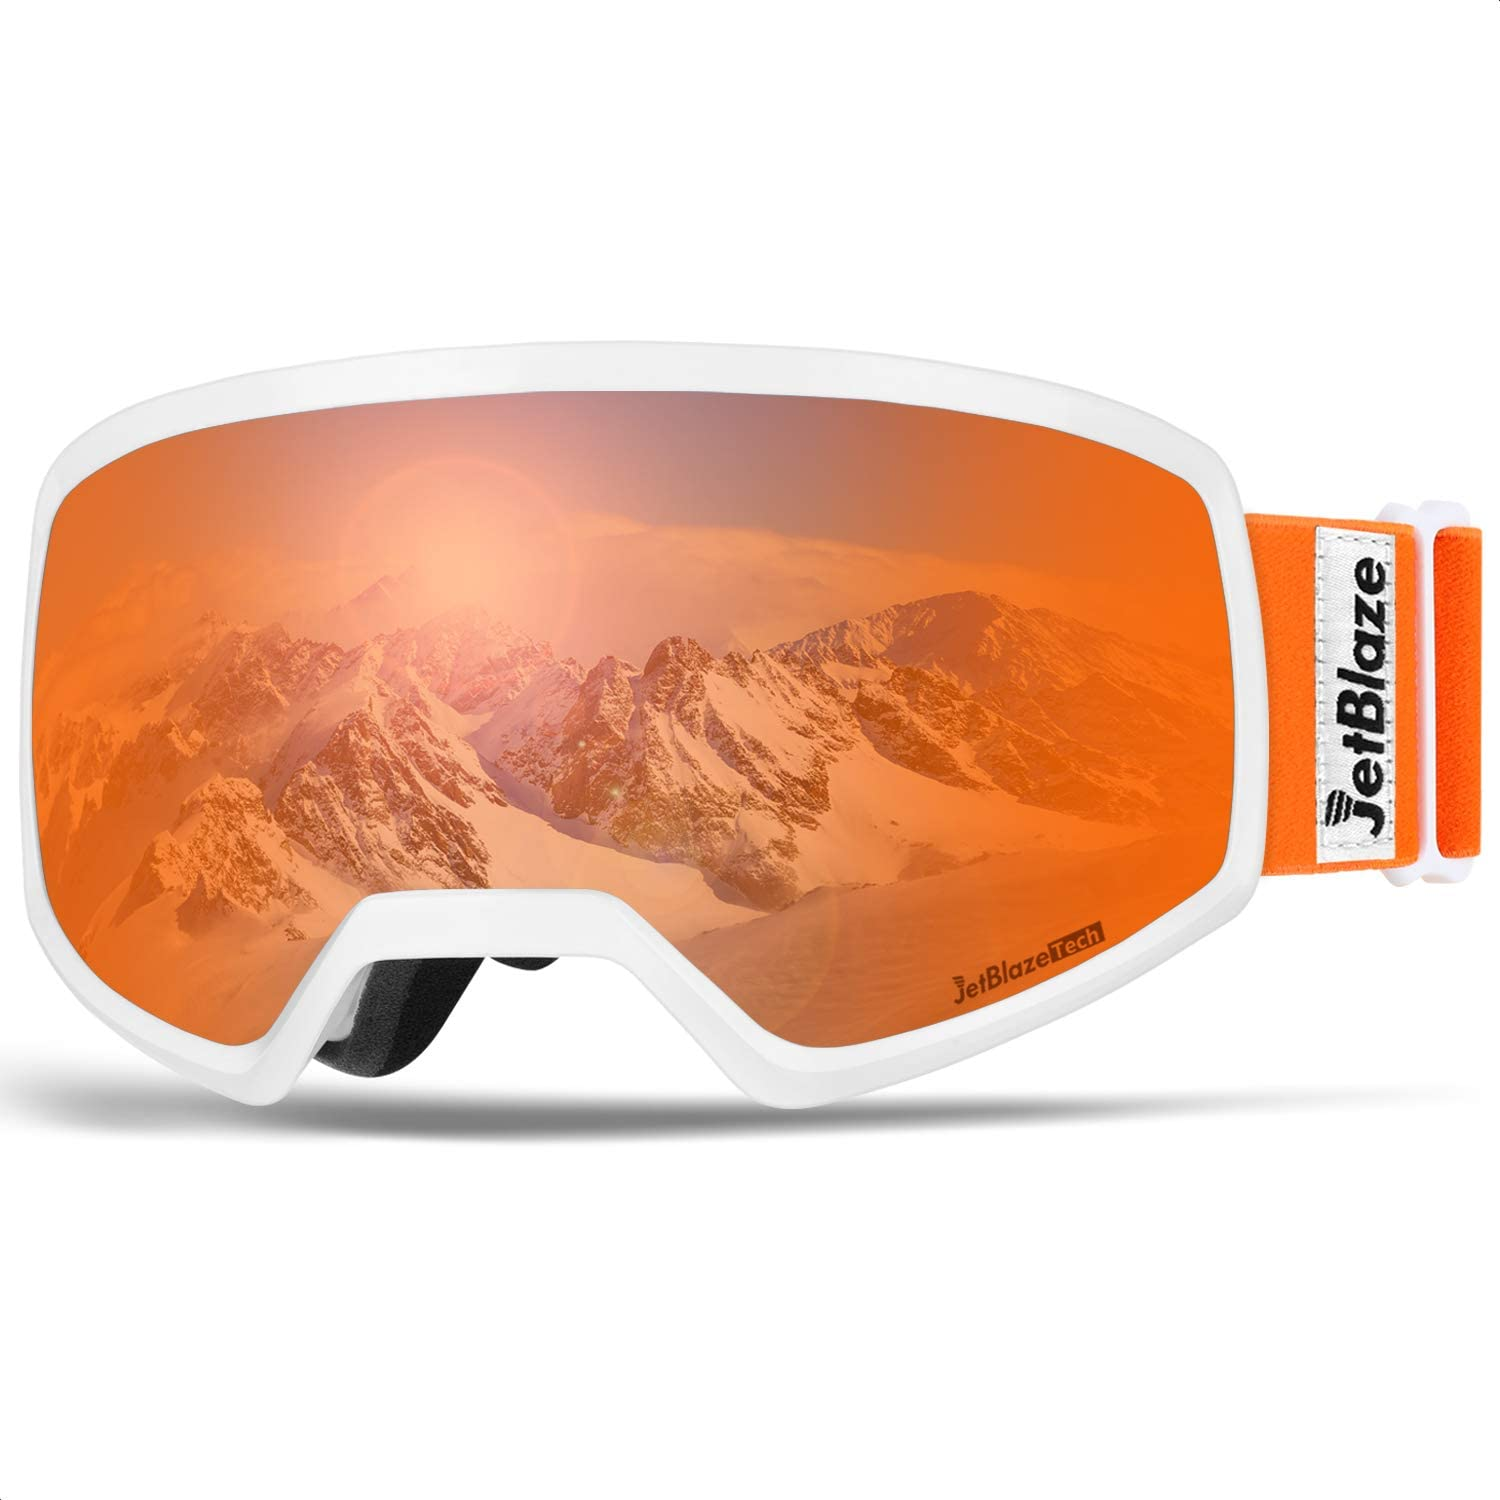 JetBlaze Ski Goggles, OTG Anti-Fog Snow Goggles, UV Protection Spherical Snowboard Goggles for Men Women Youth Adult